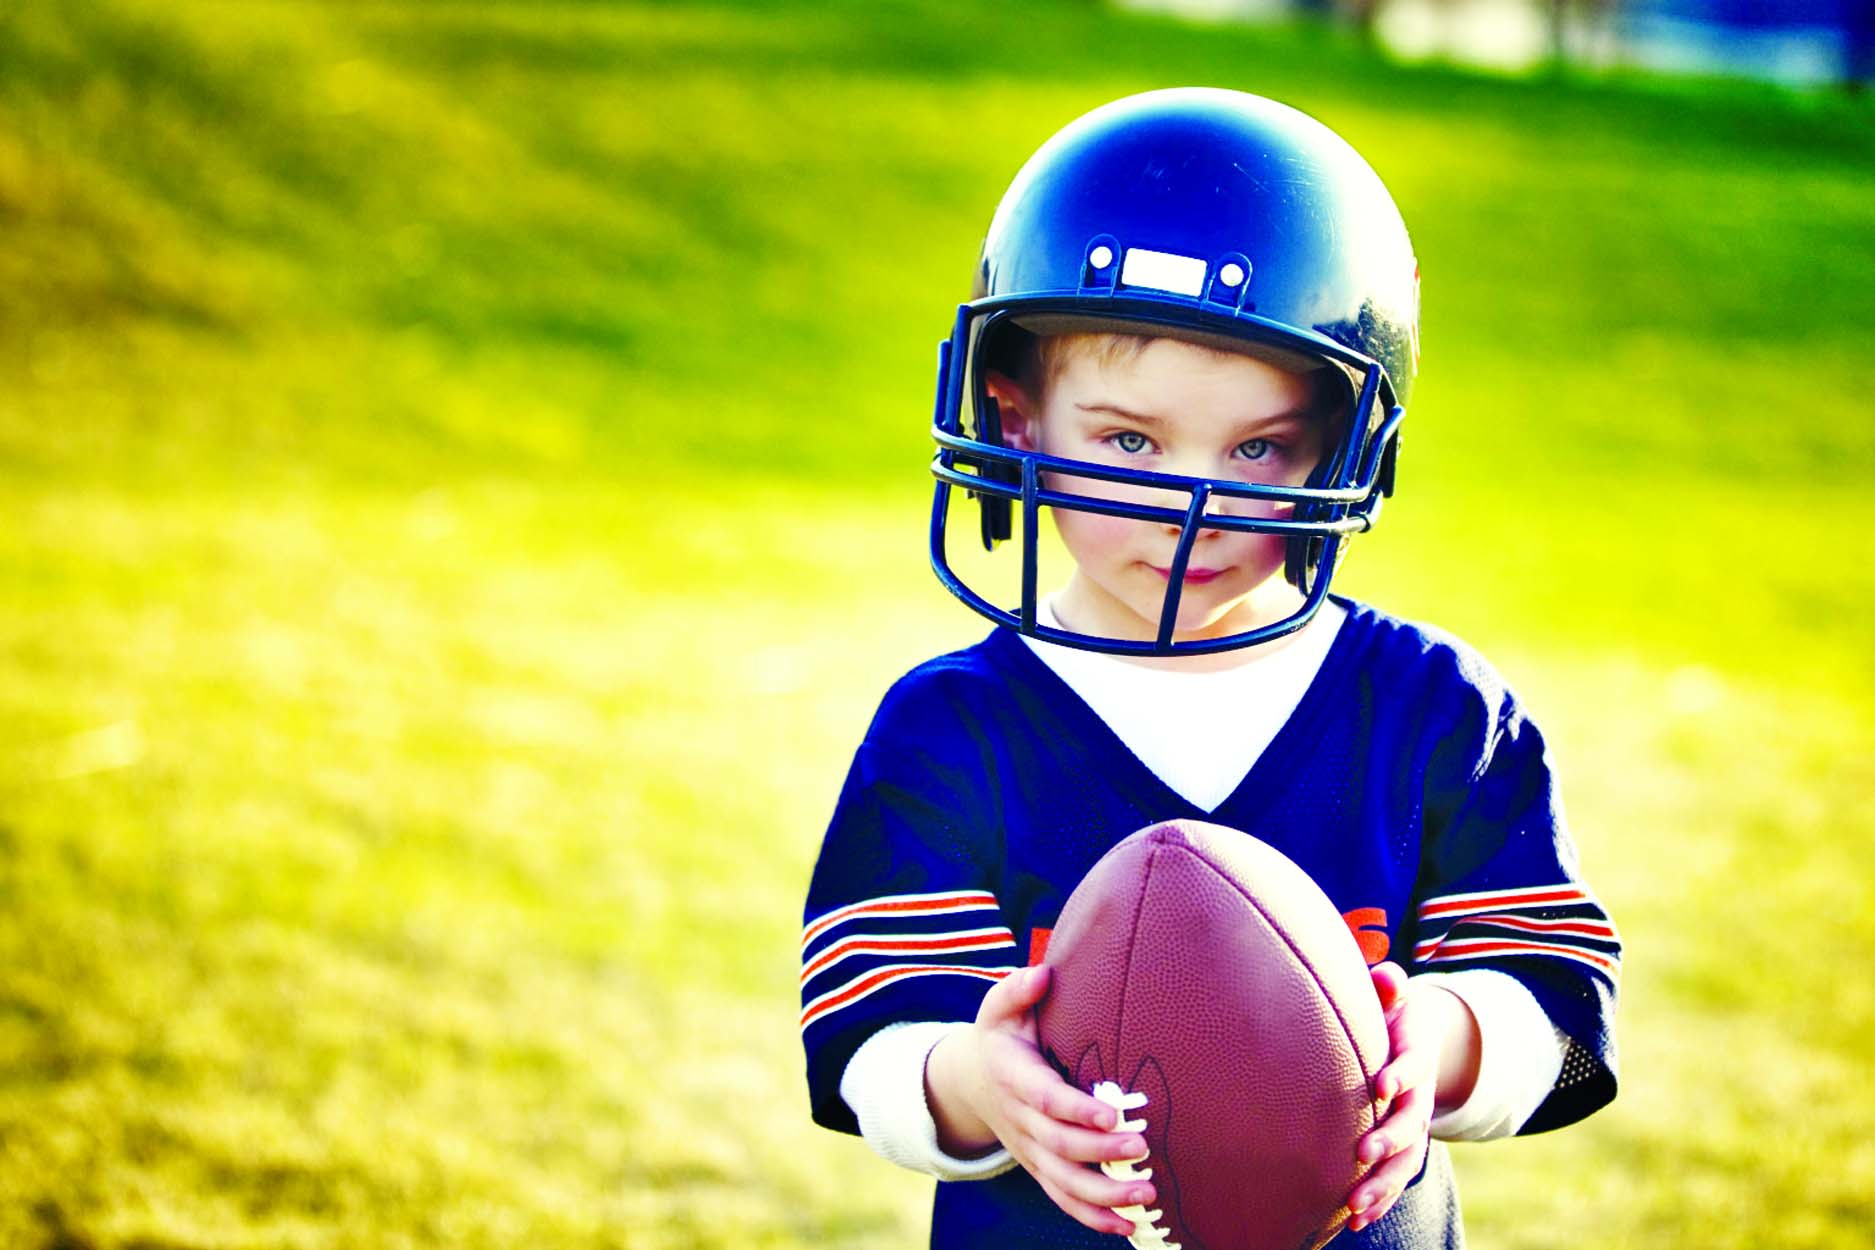 Get involved in sports, social activities can help to be confident teens